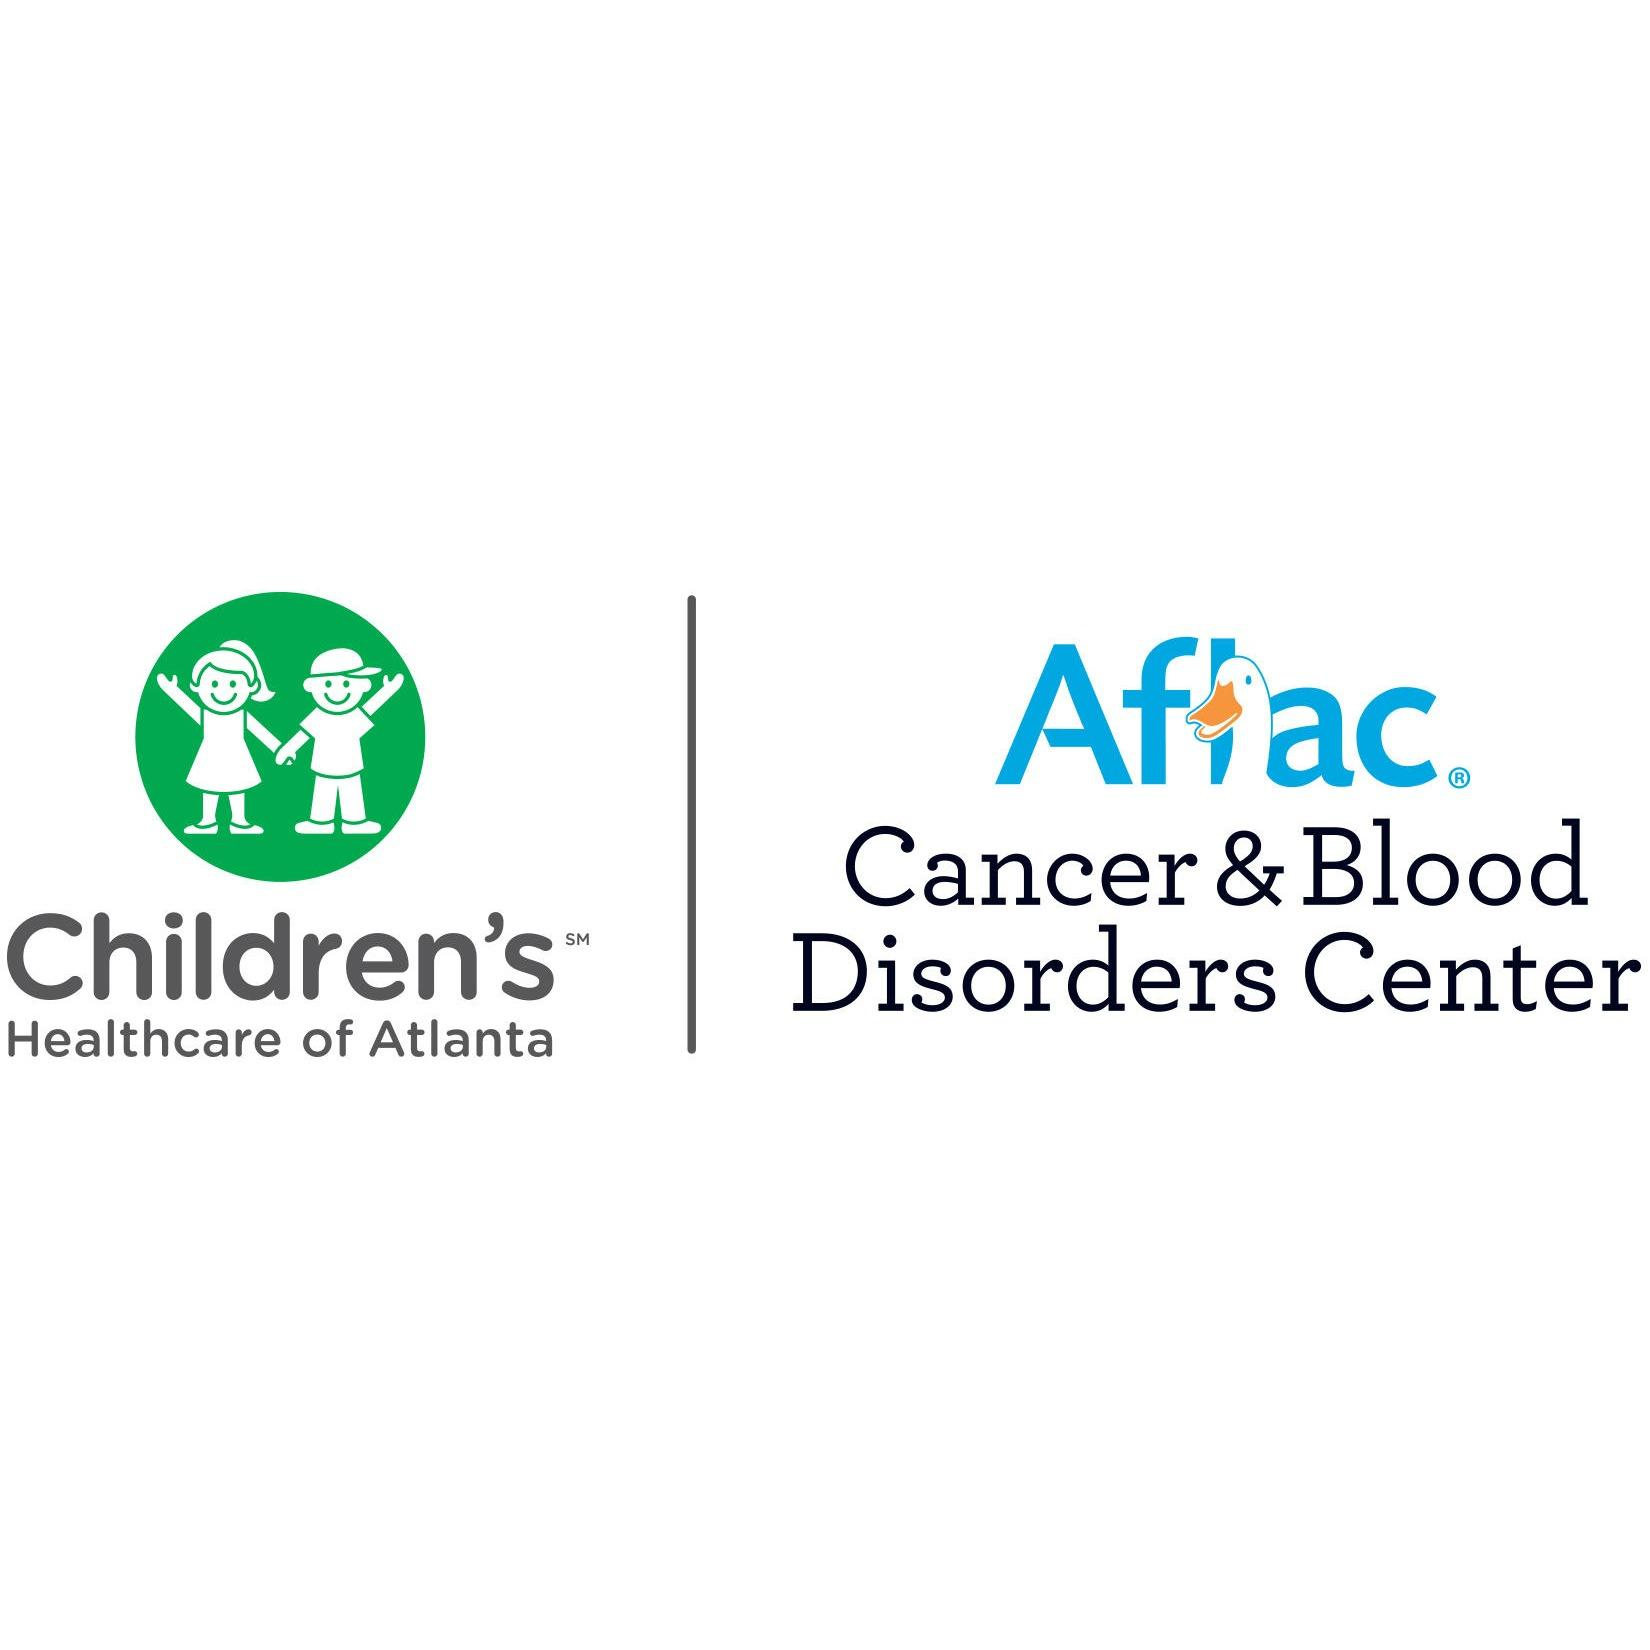 Aflac Cancer and Blood Disorders Center